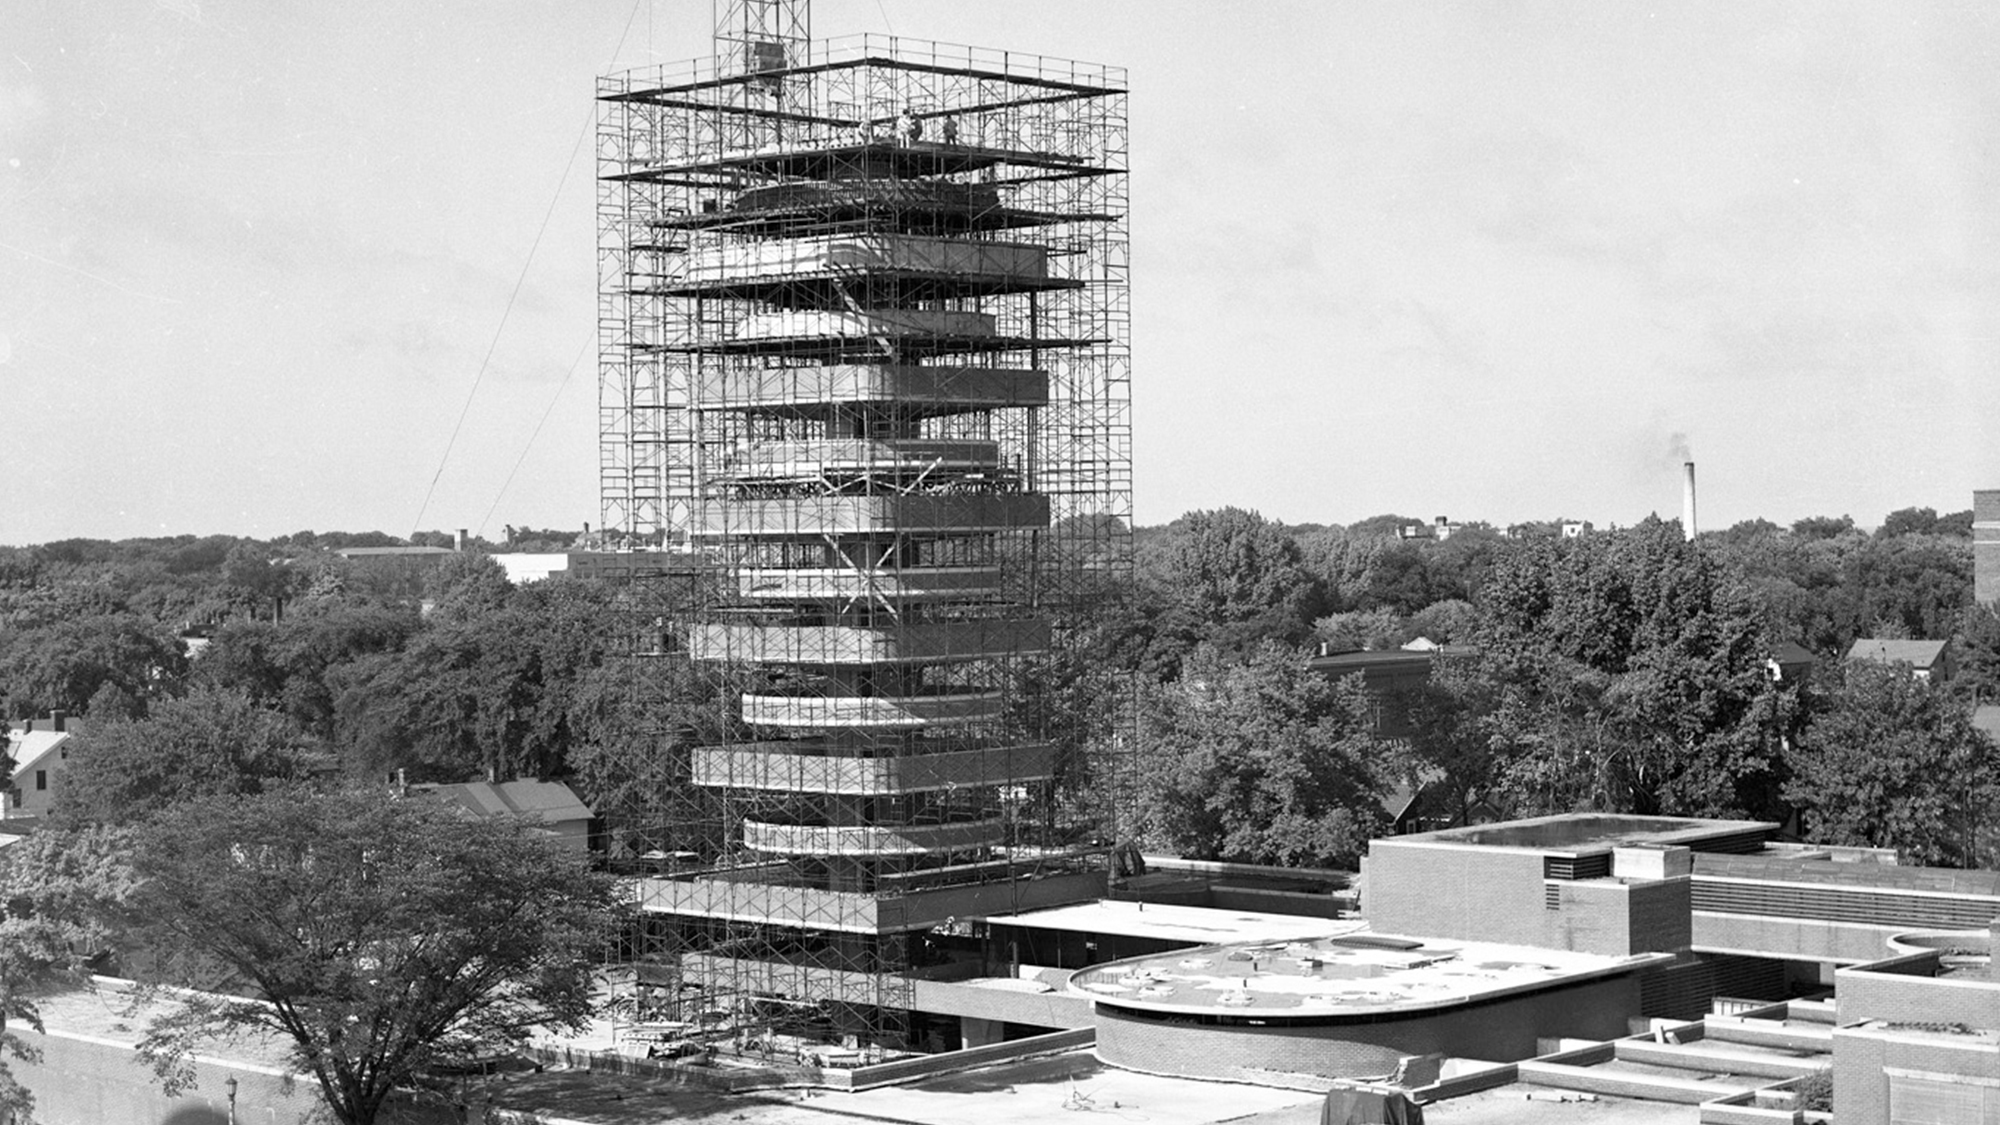 Construction begins on Frank Lloyd Wright's famous building